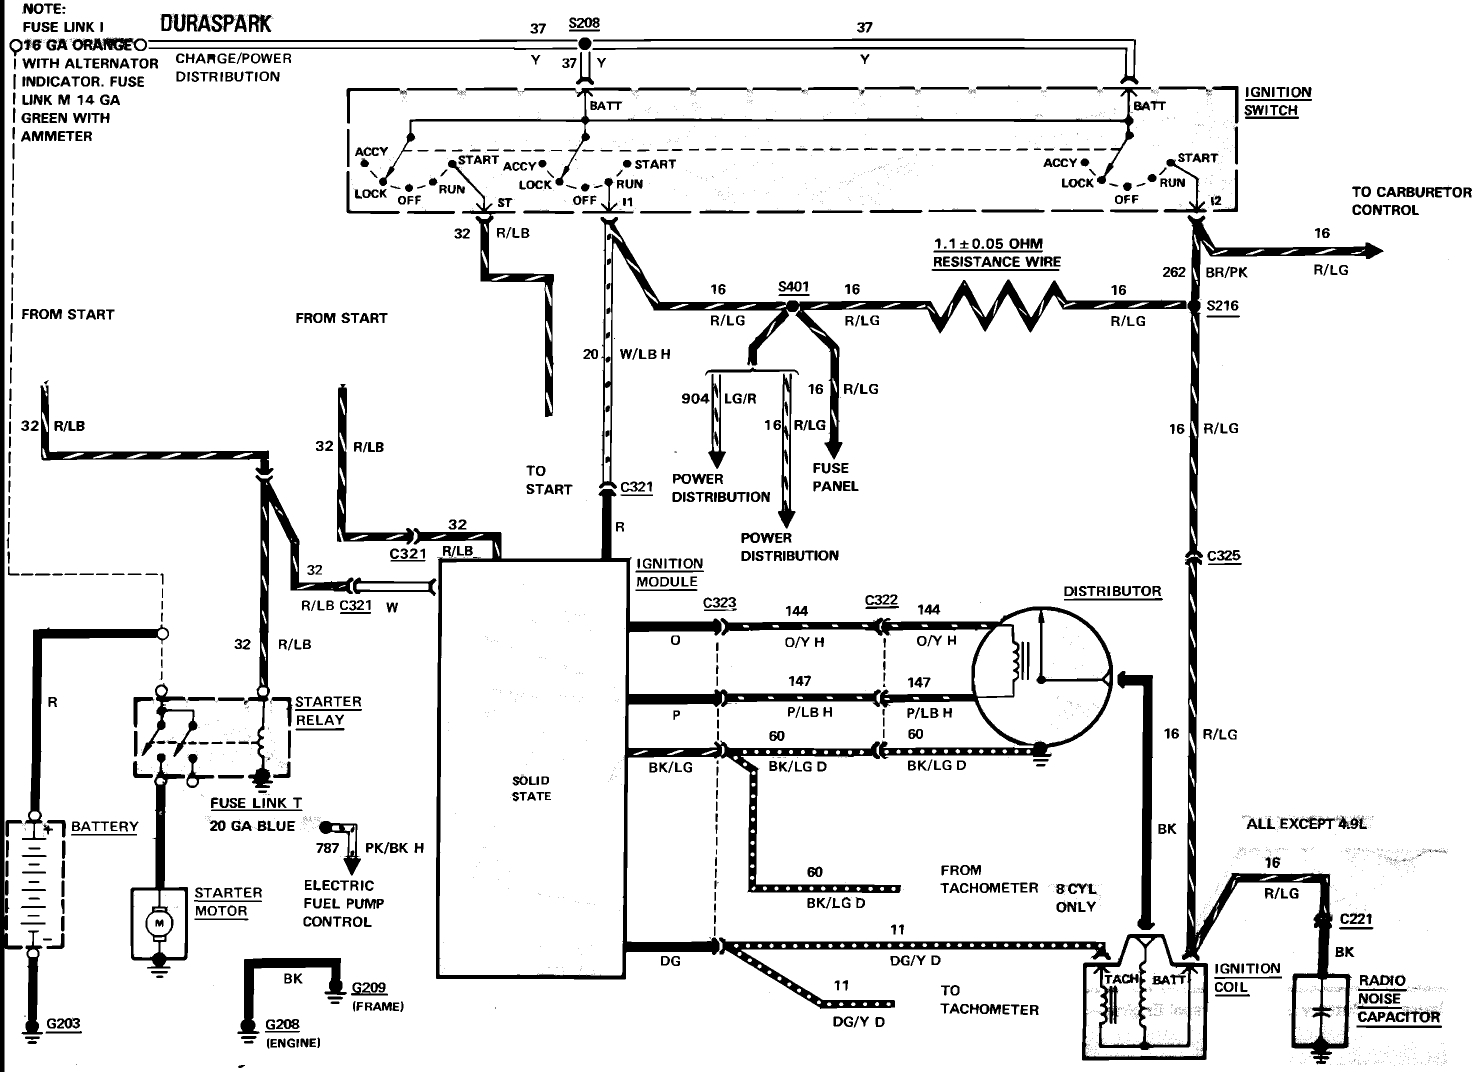 rocketa ignition switch wire diagram three 1989 ford f150 ignition wiring diagram | free wiring diagram